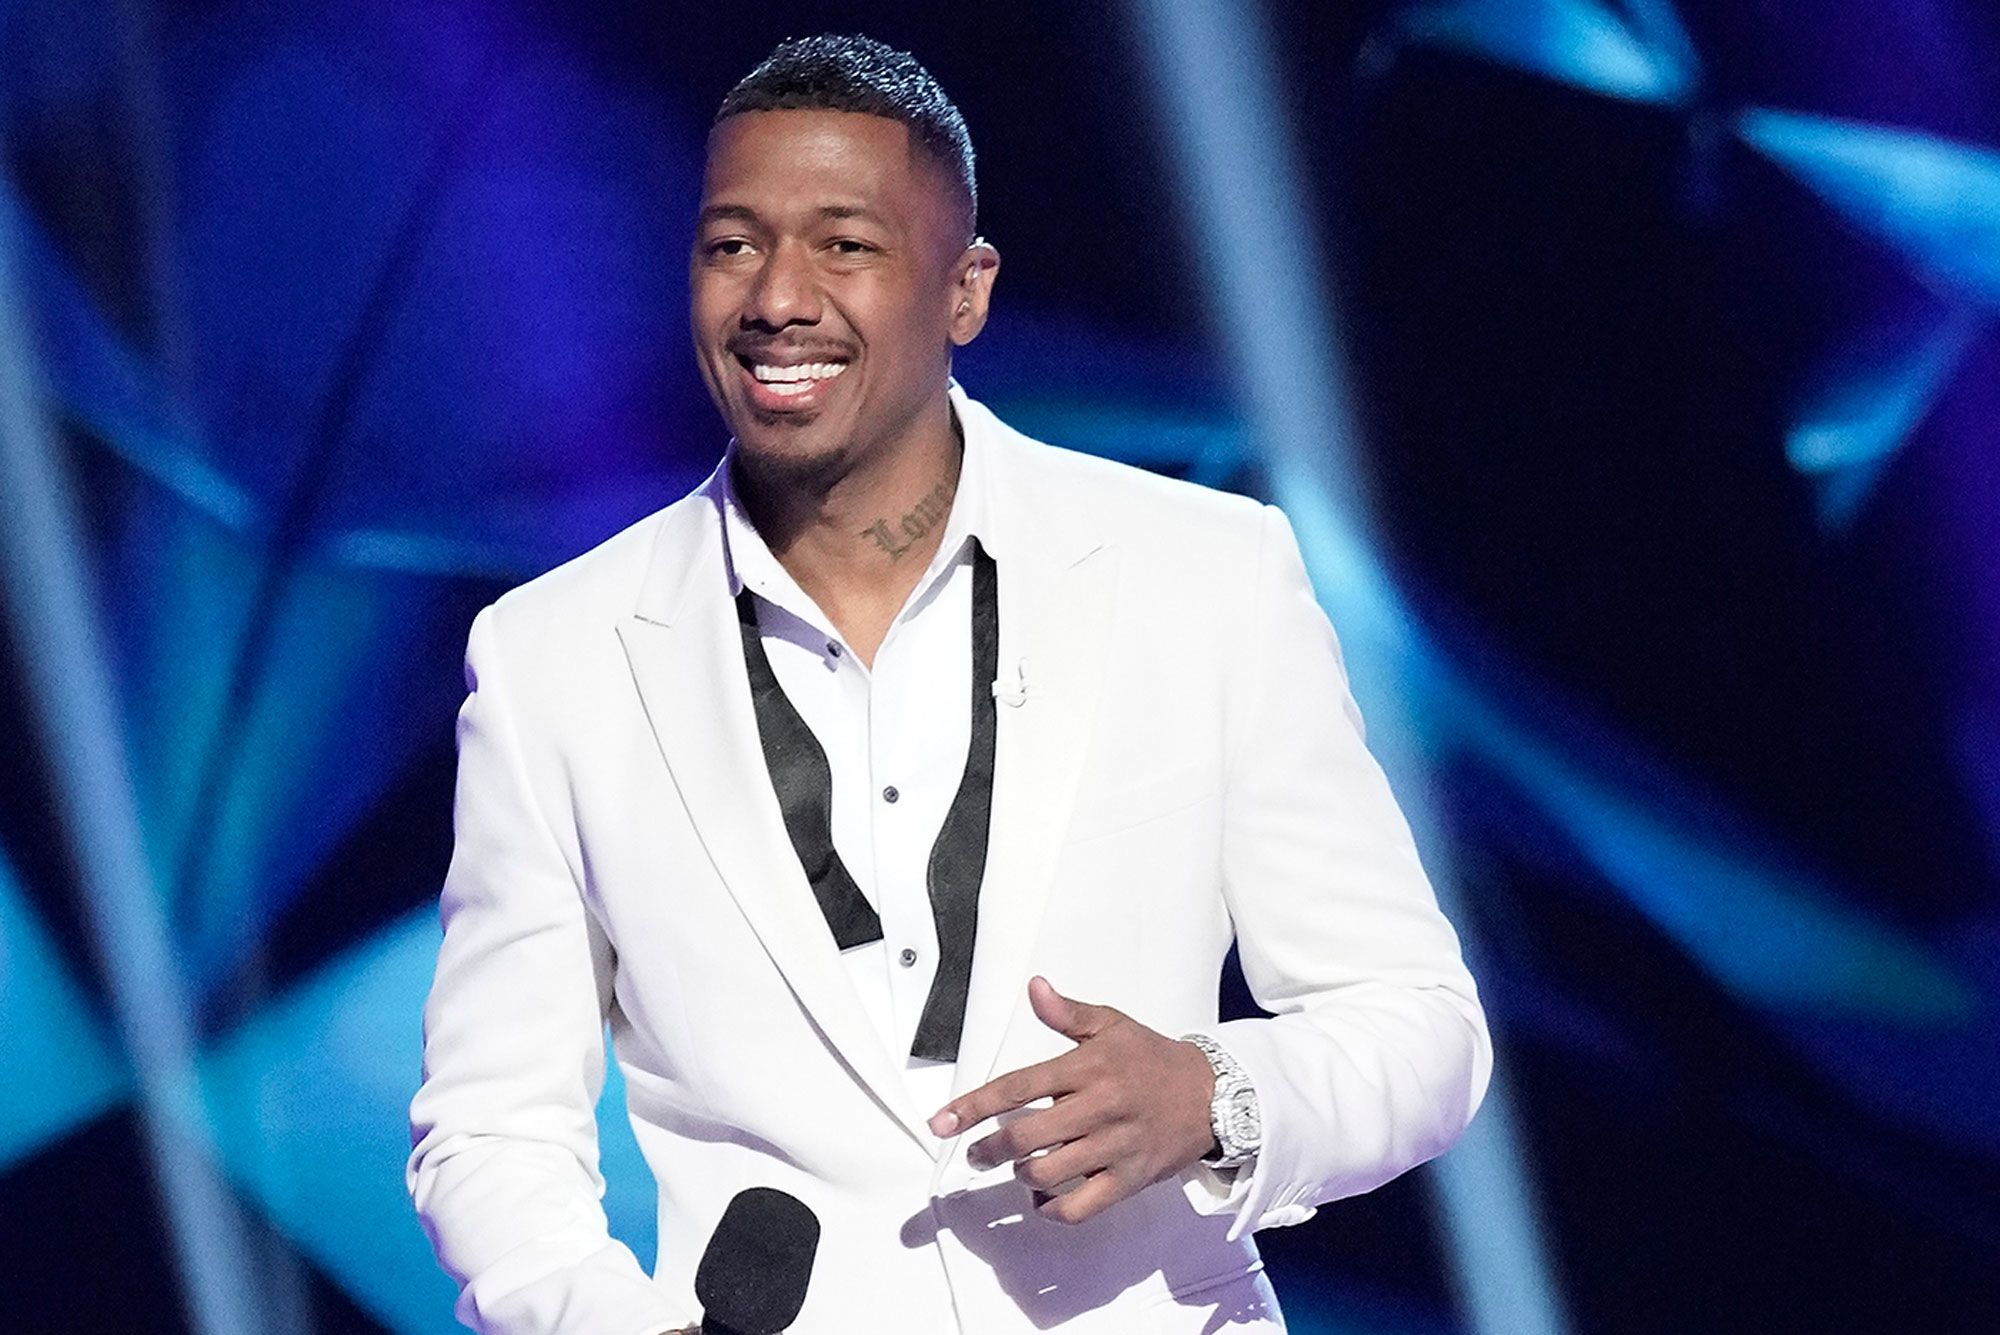 Nick Cannon After 7th Child says he will have More children if God's will!